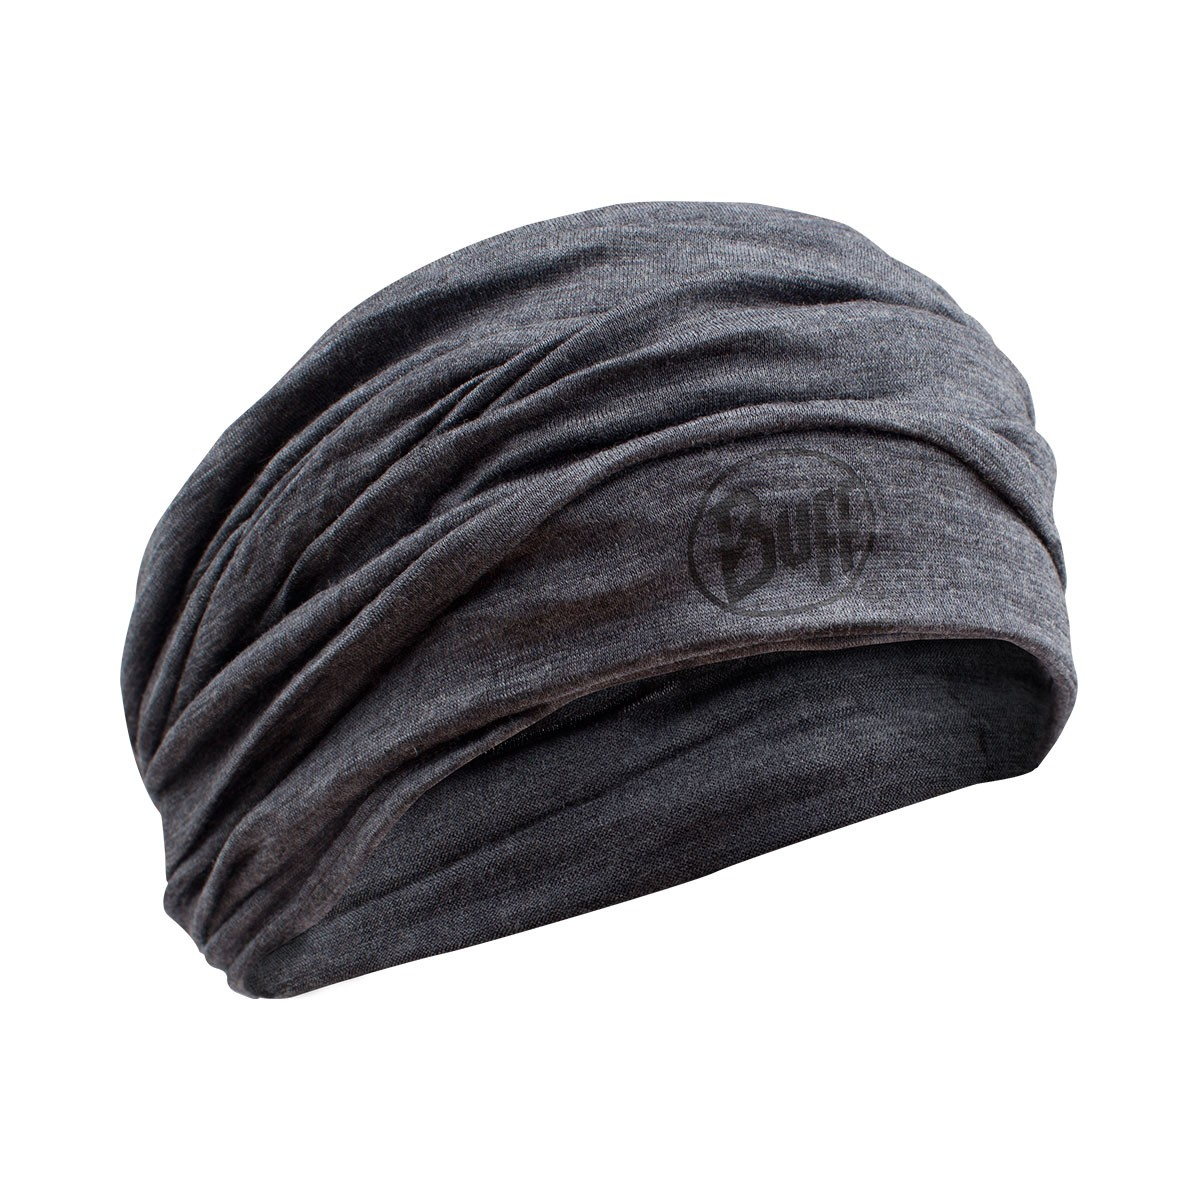 Buff Unisex Merino Wool Buff